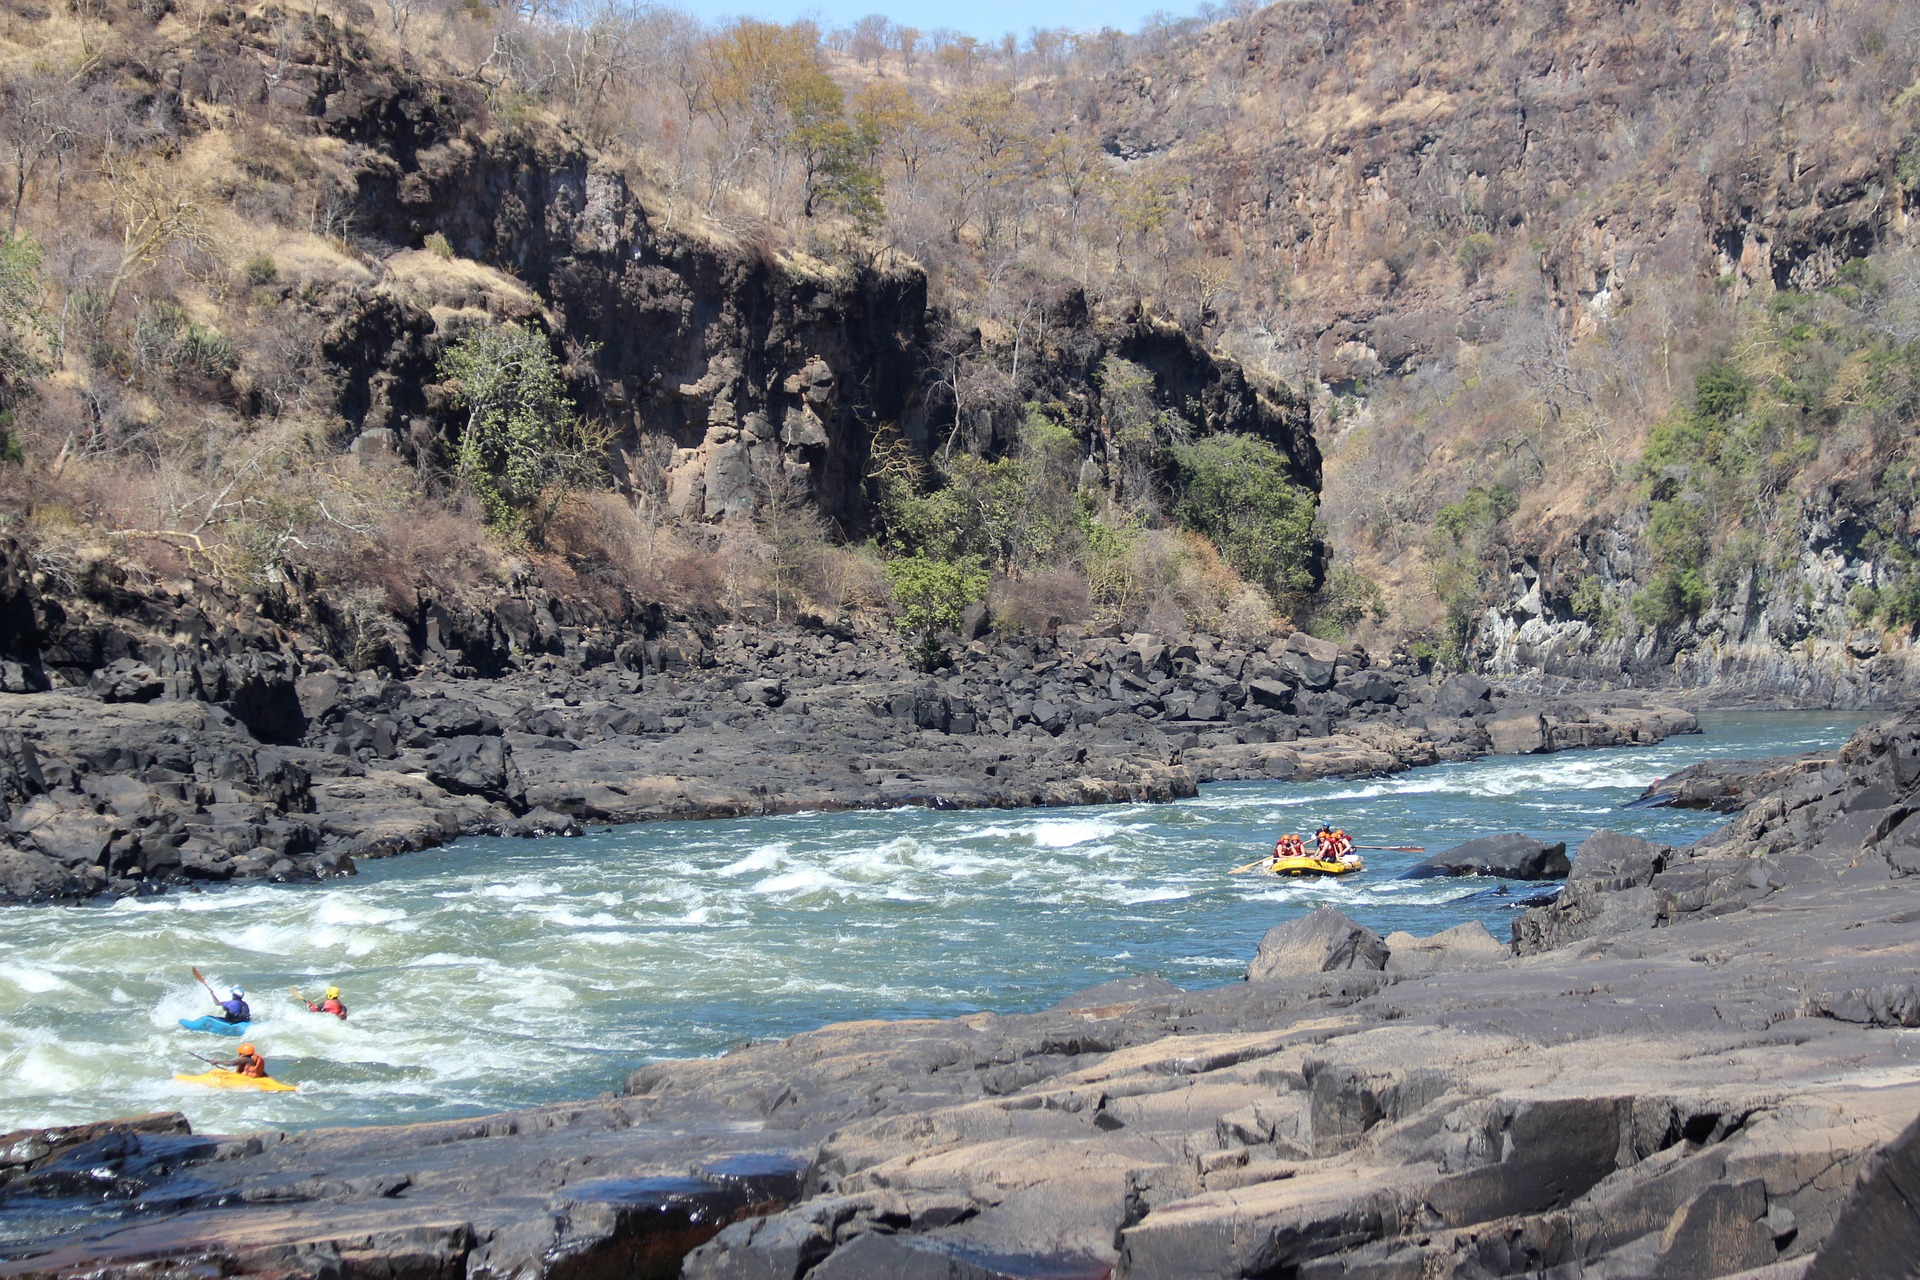 White water rafting at Victoria Falls, Zimbabwe